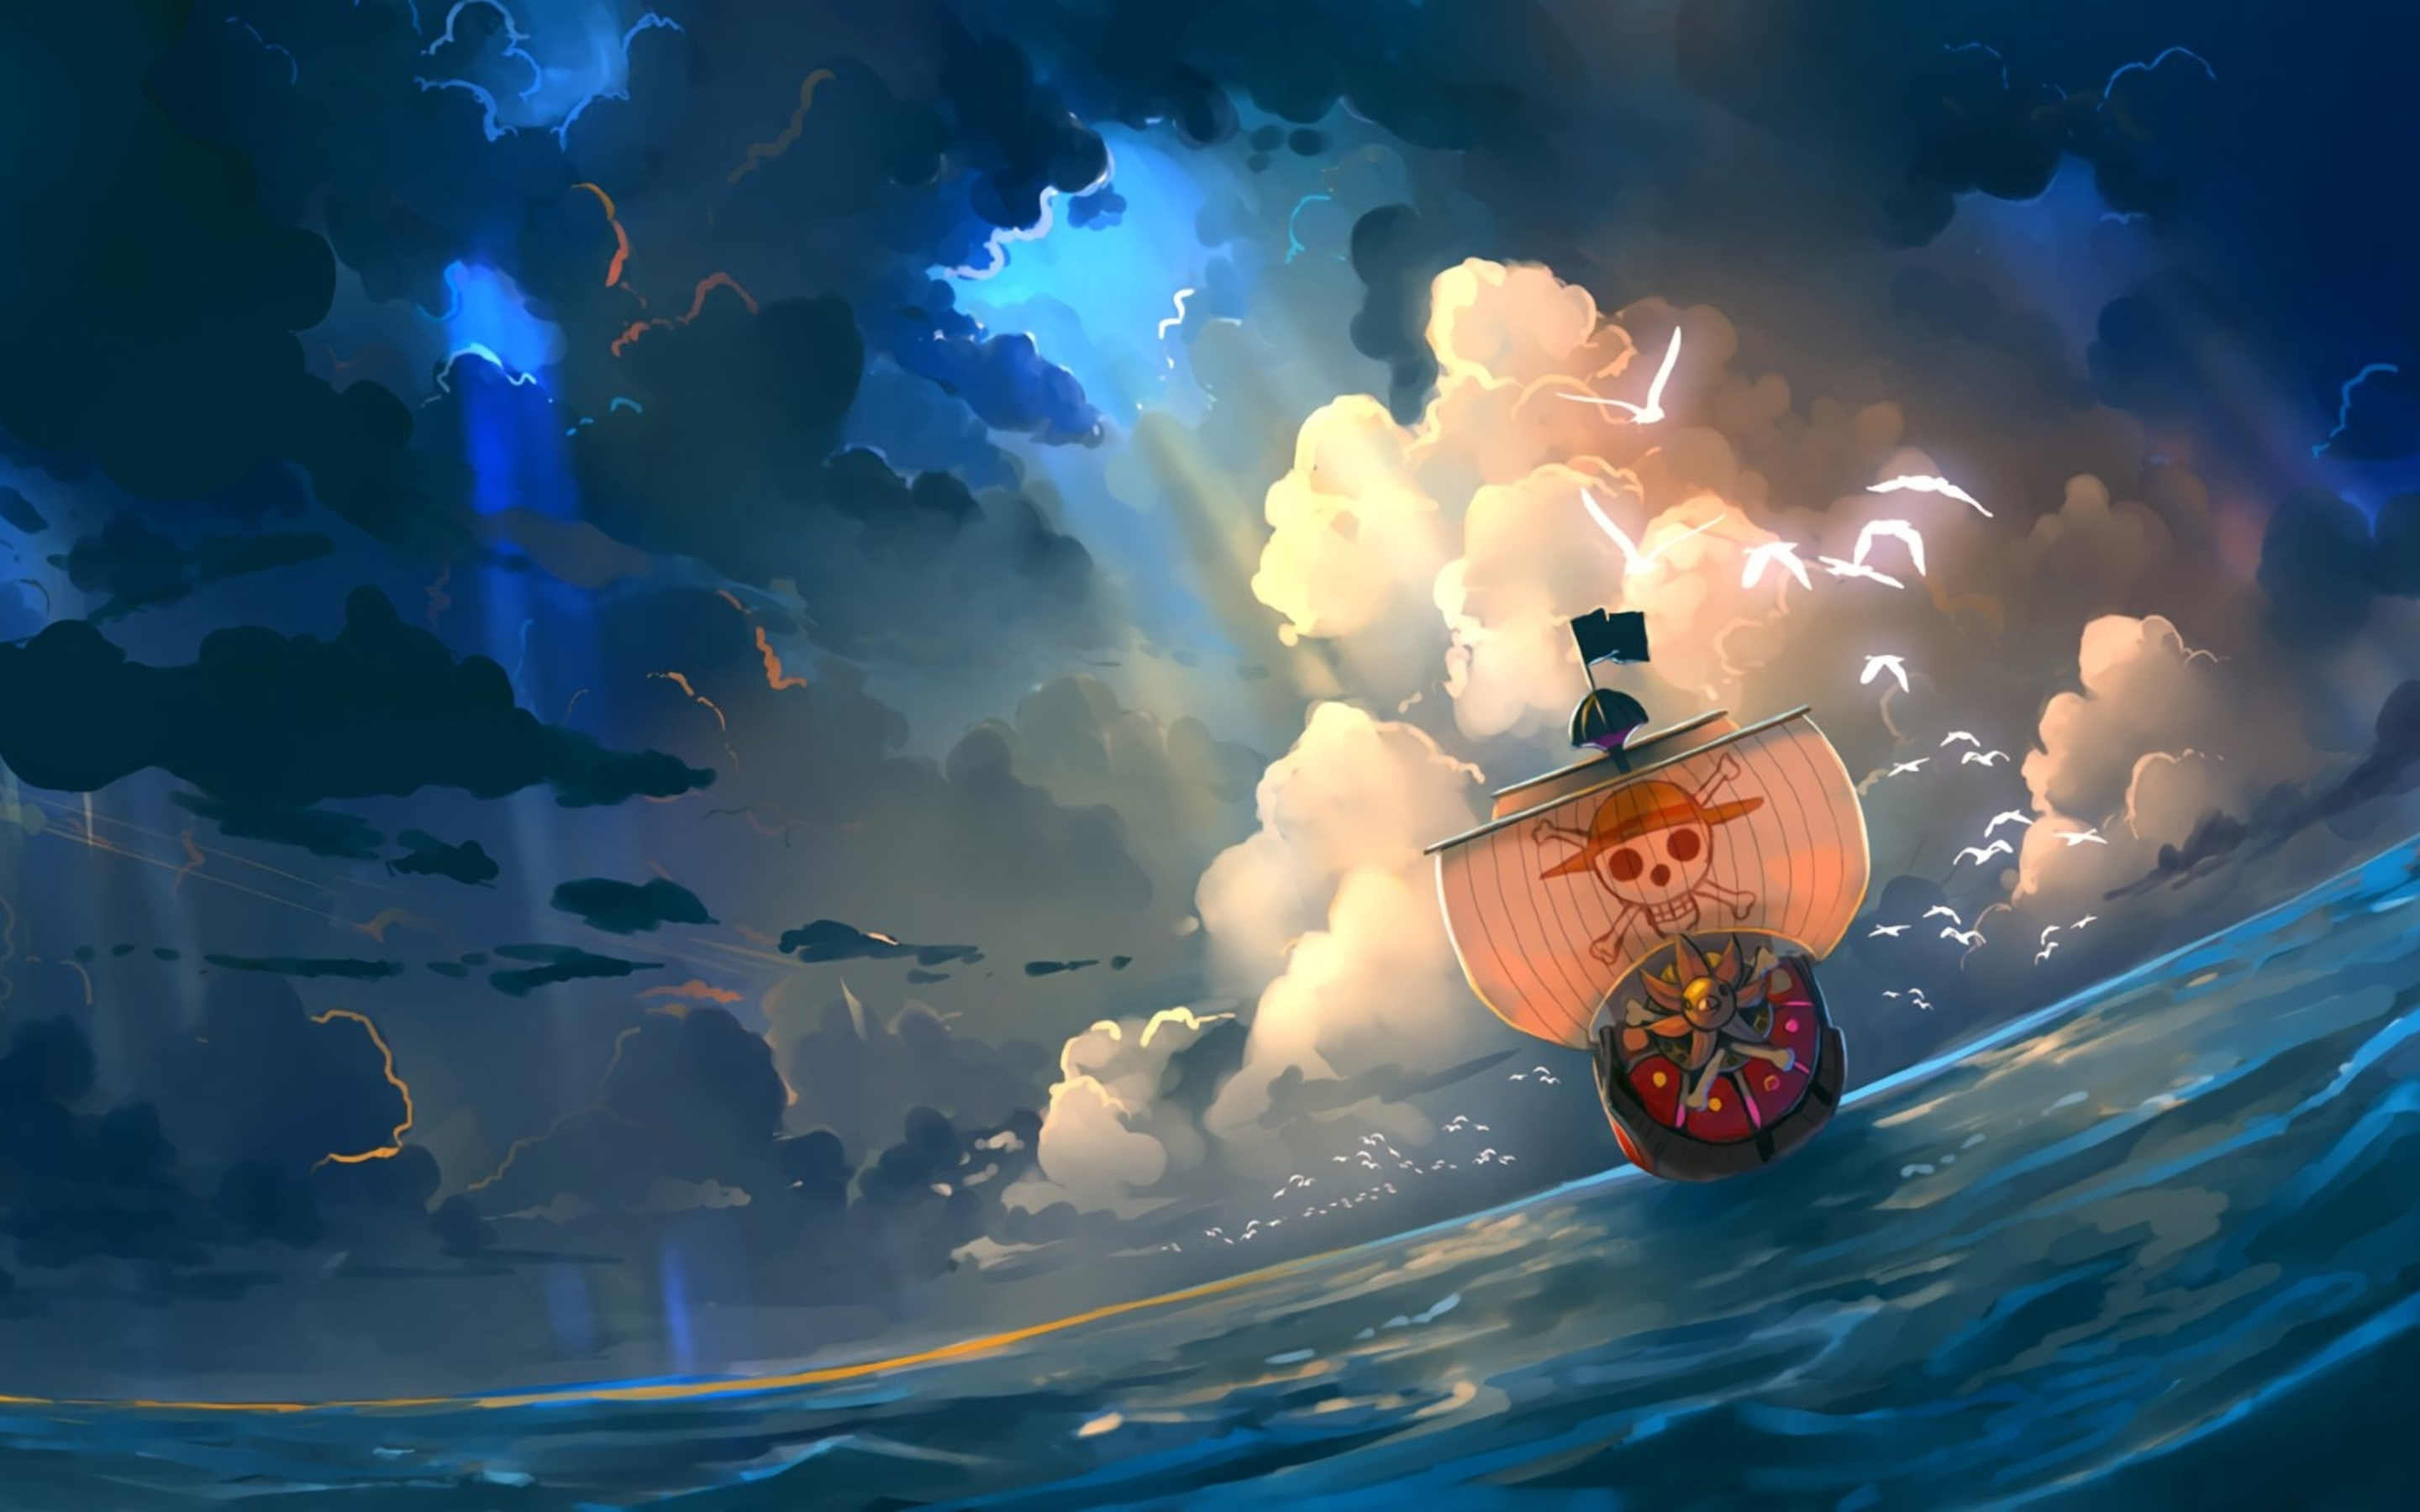 2880x1800 One Piece Anime Artwork Macbook Pro Retina Hd 4k